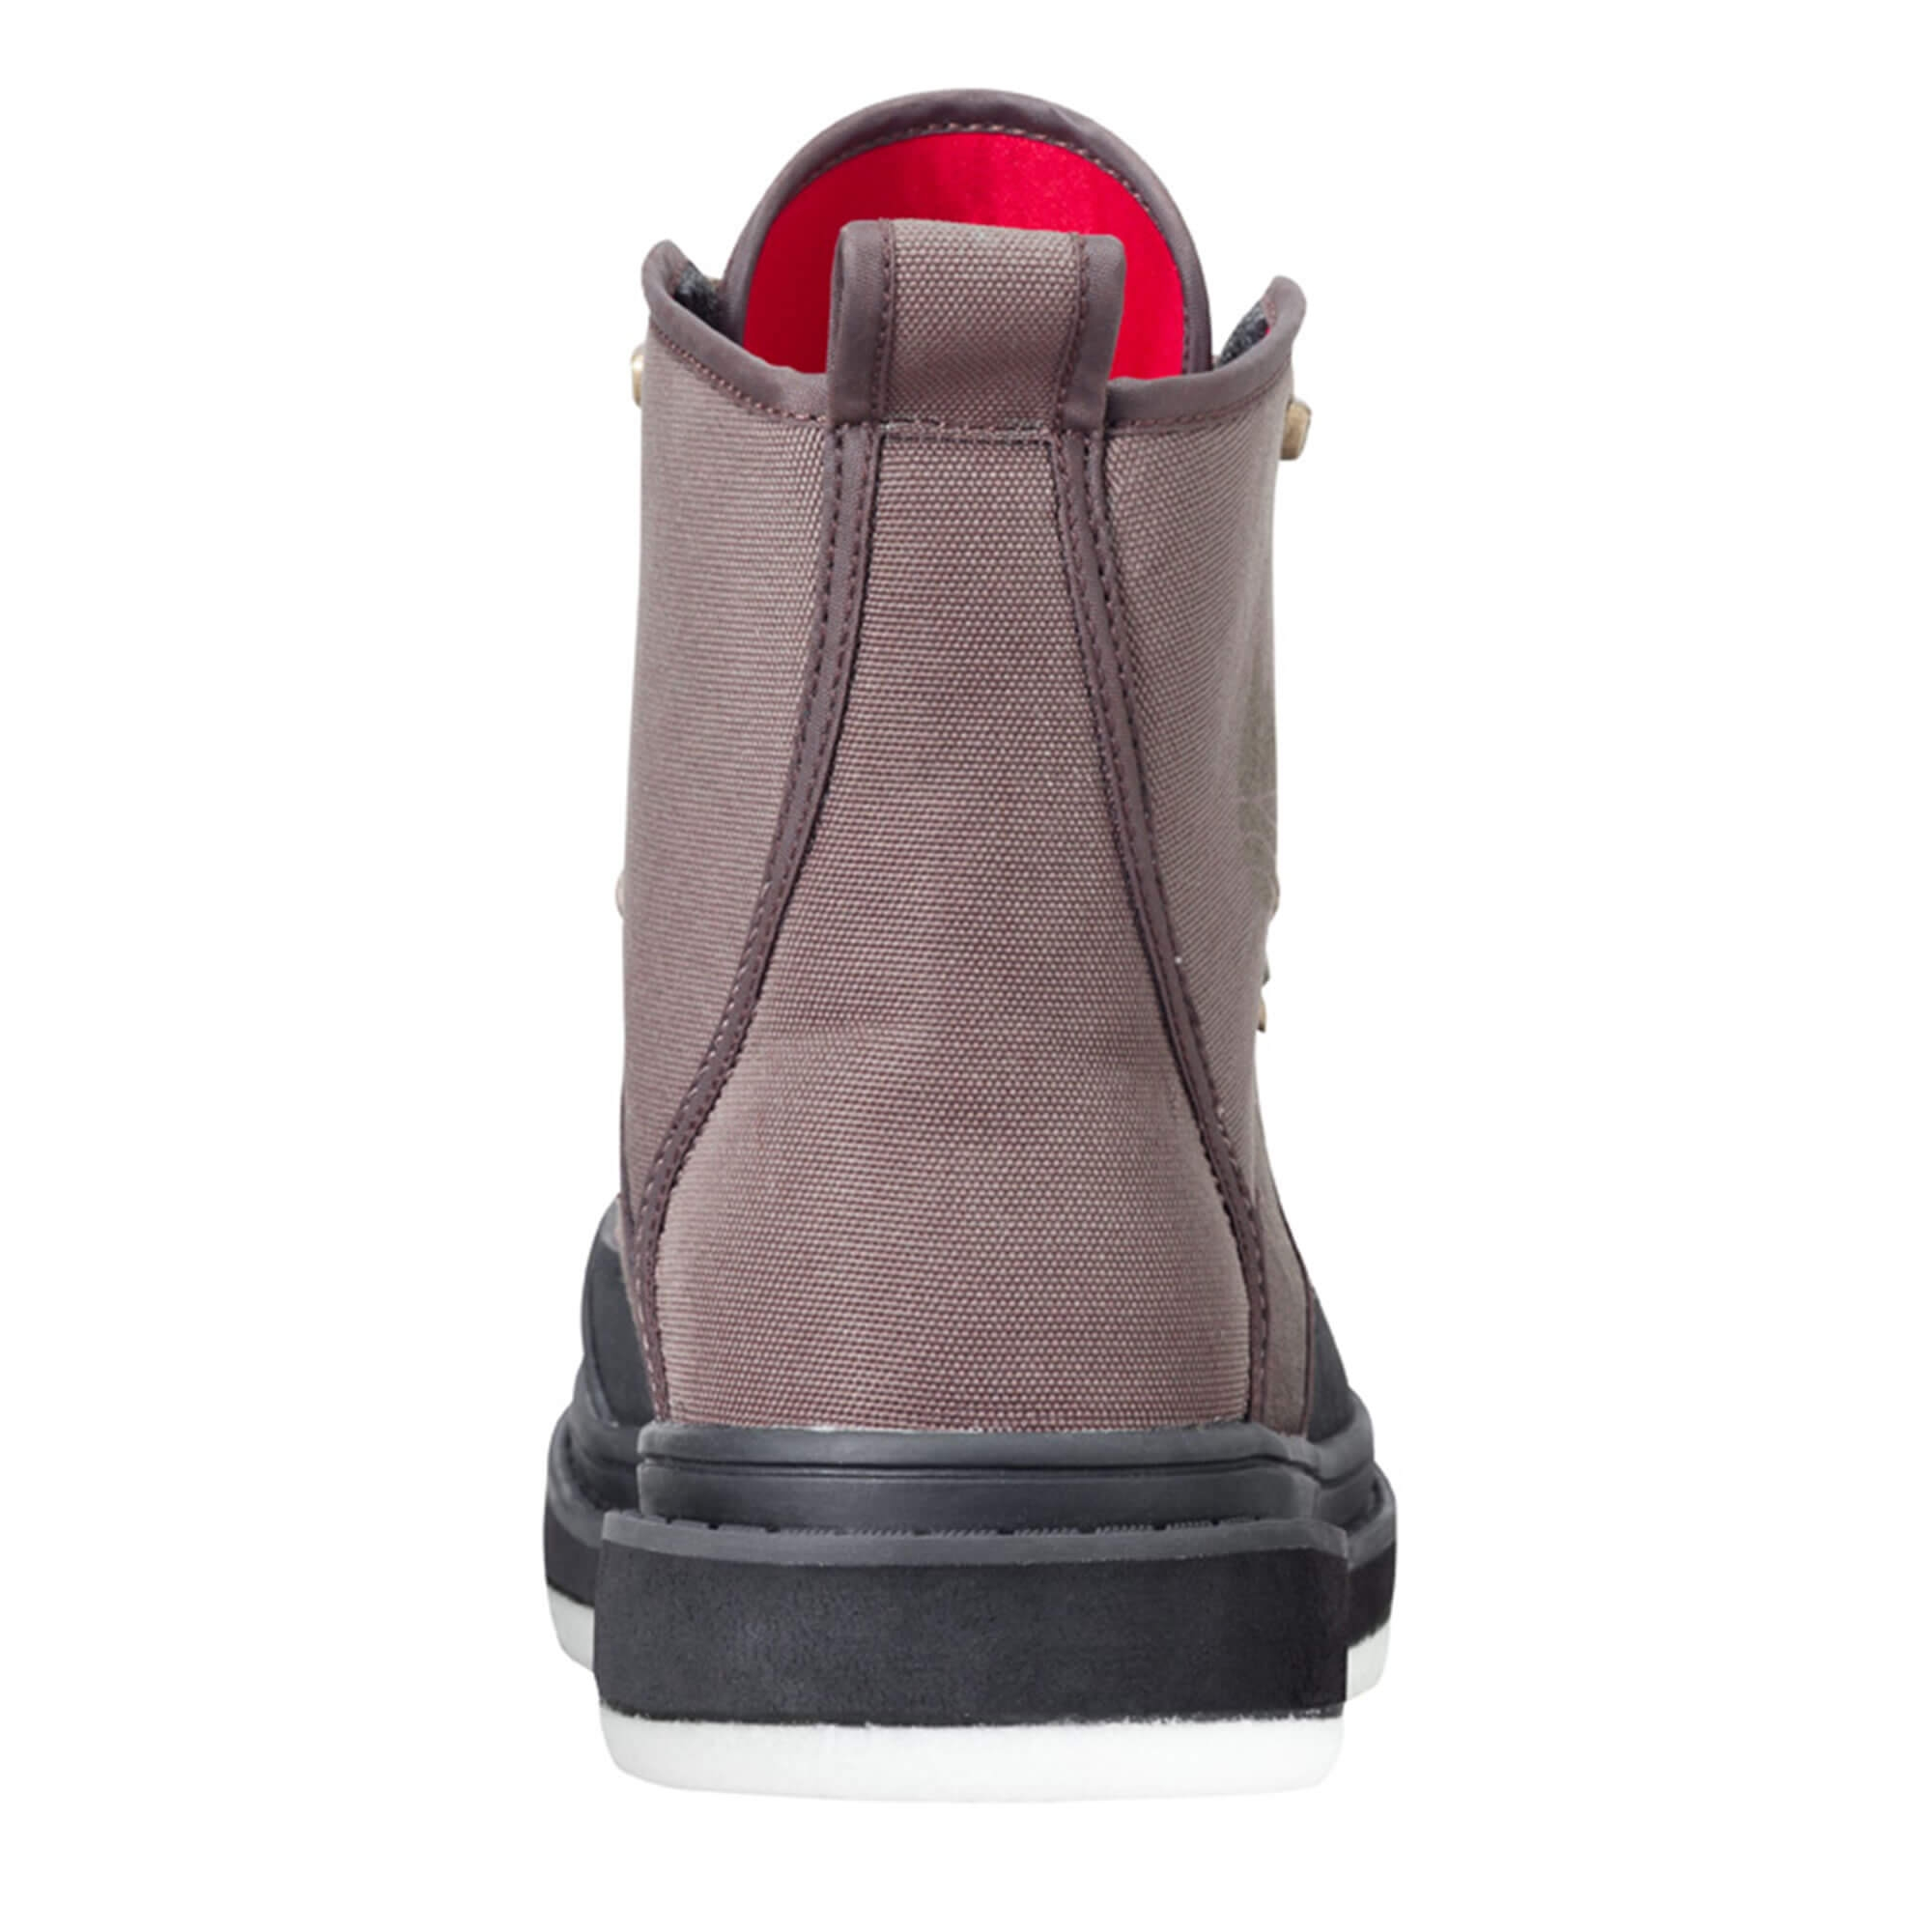 PALIX BOOT Sticky Walnut Rubber